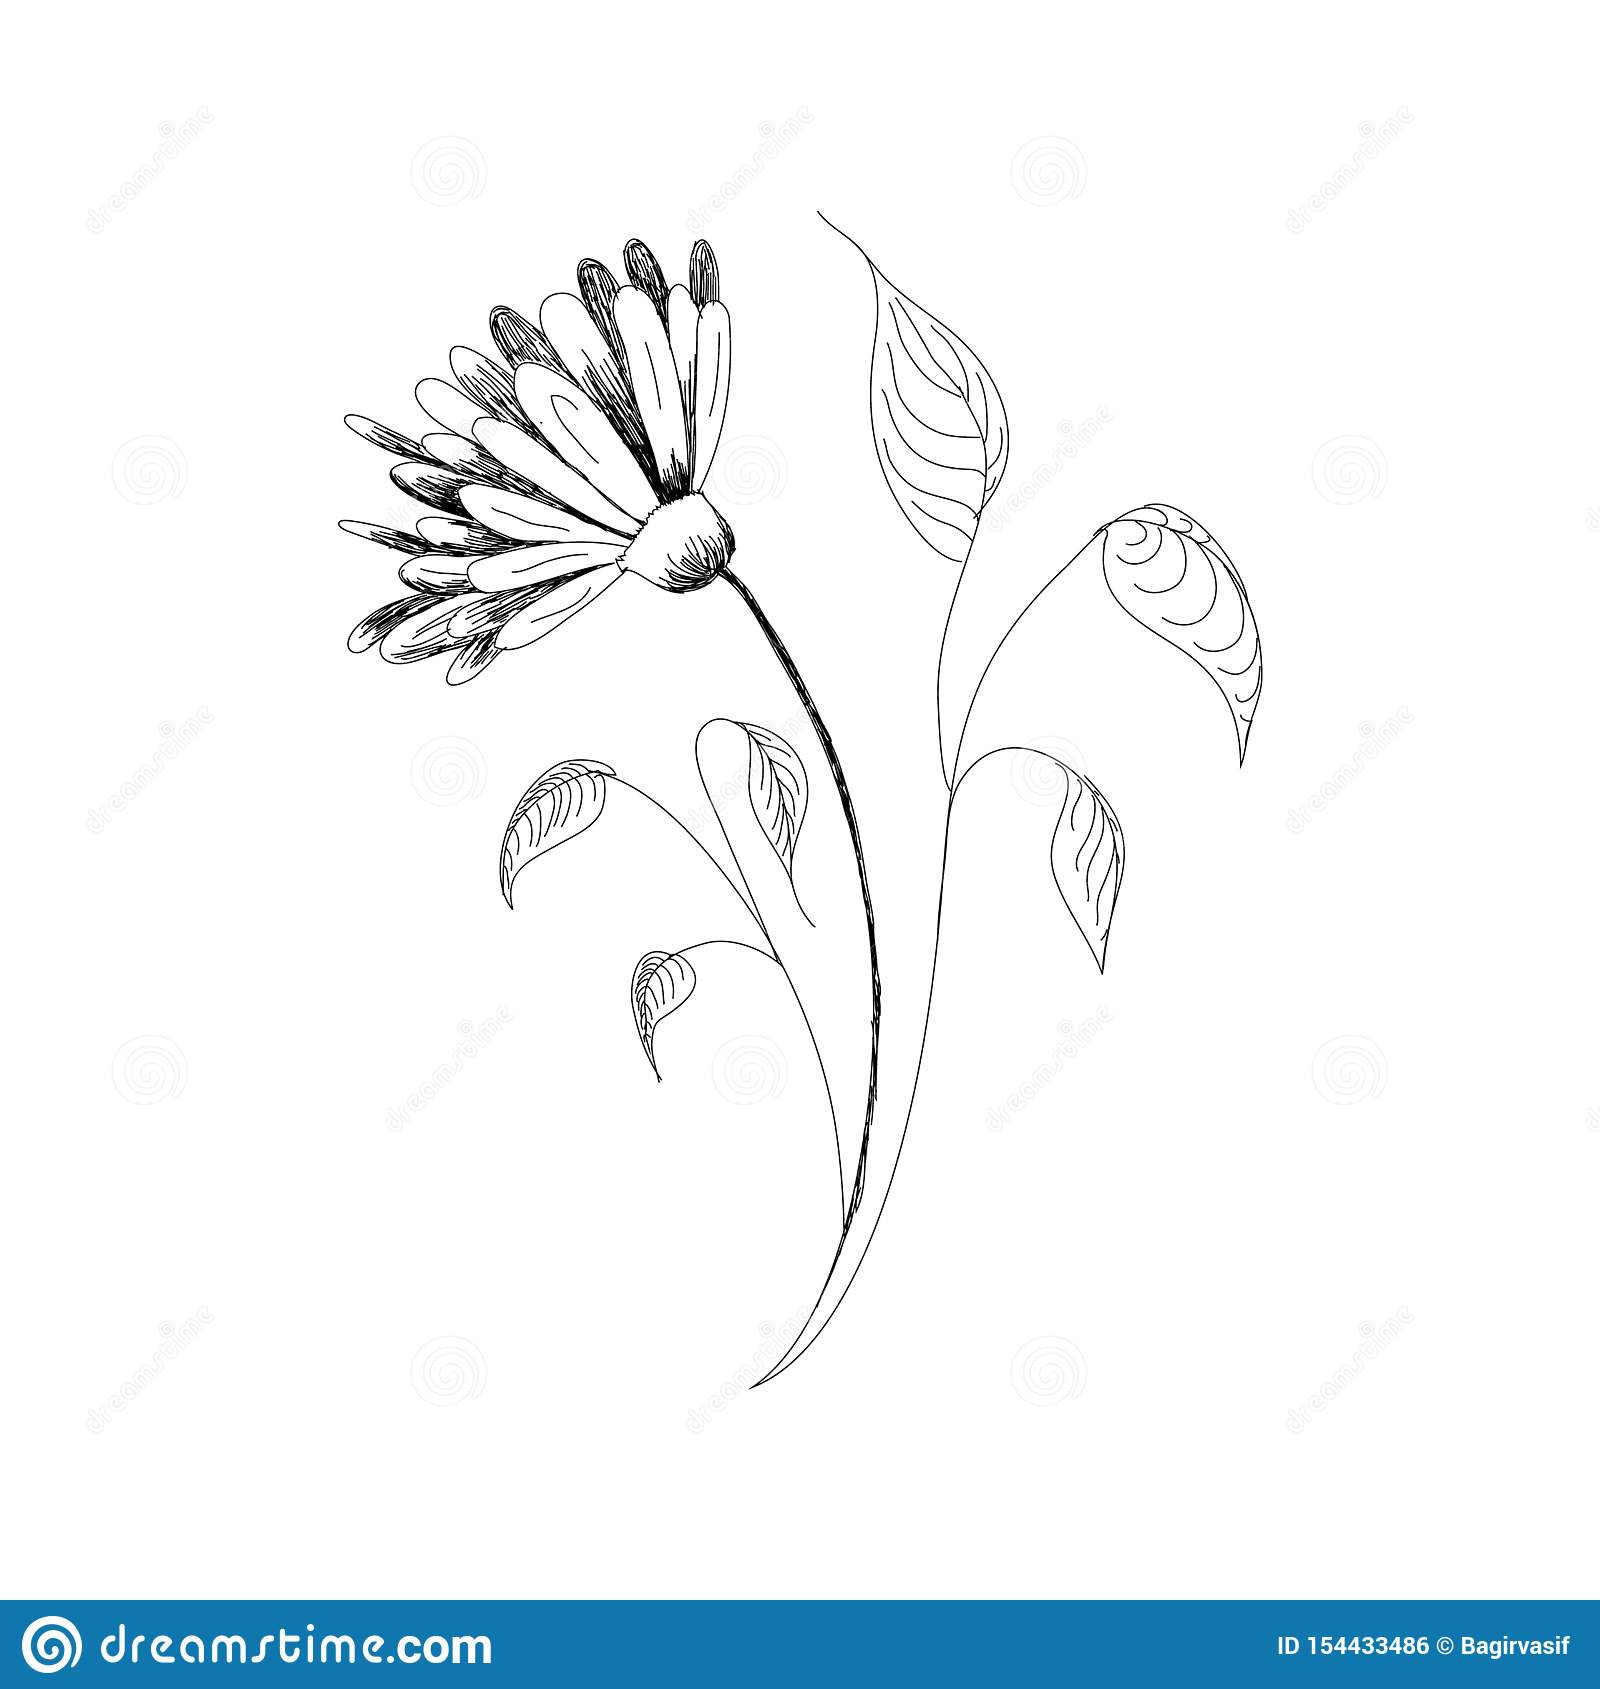 Vector Drawing Flowers Hand Drawn Chamomiles Daisies Jerusalem Artichoke Flower Botanical Drawings Coloring Page Flowers On Stock Illustration Illustration Of Graphic Artichoke 154433486